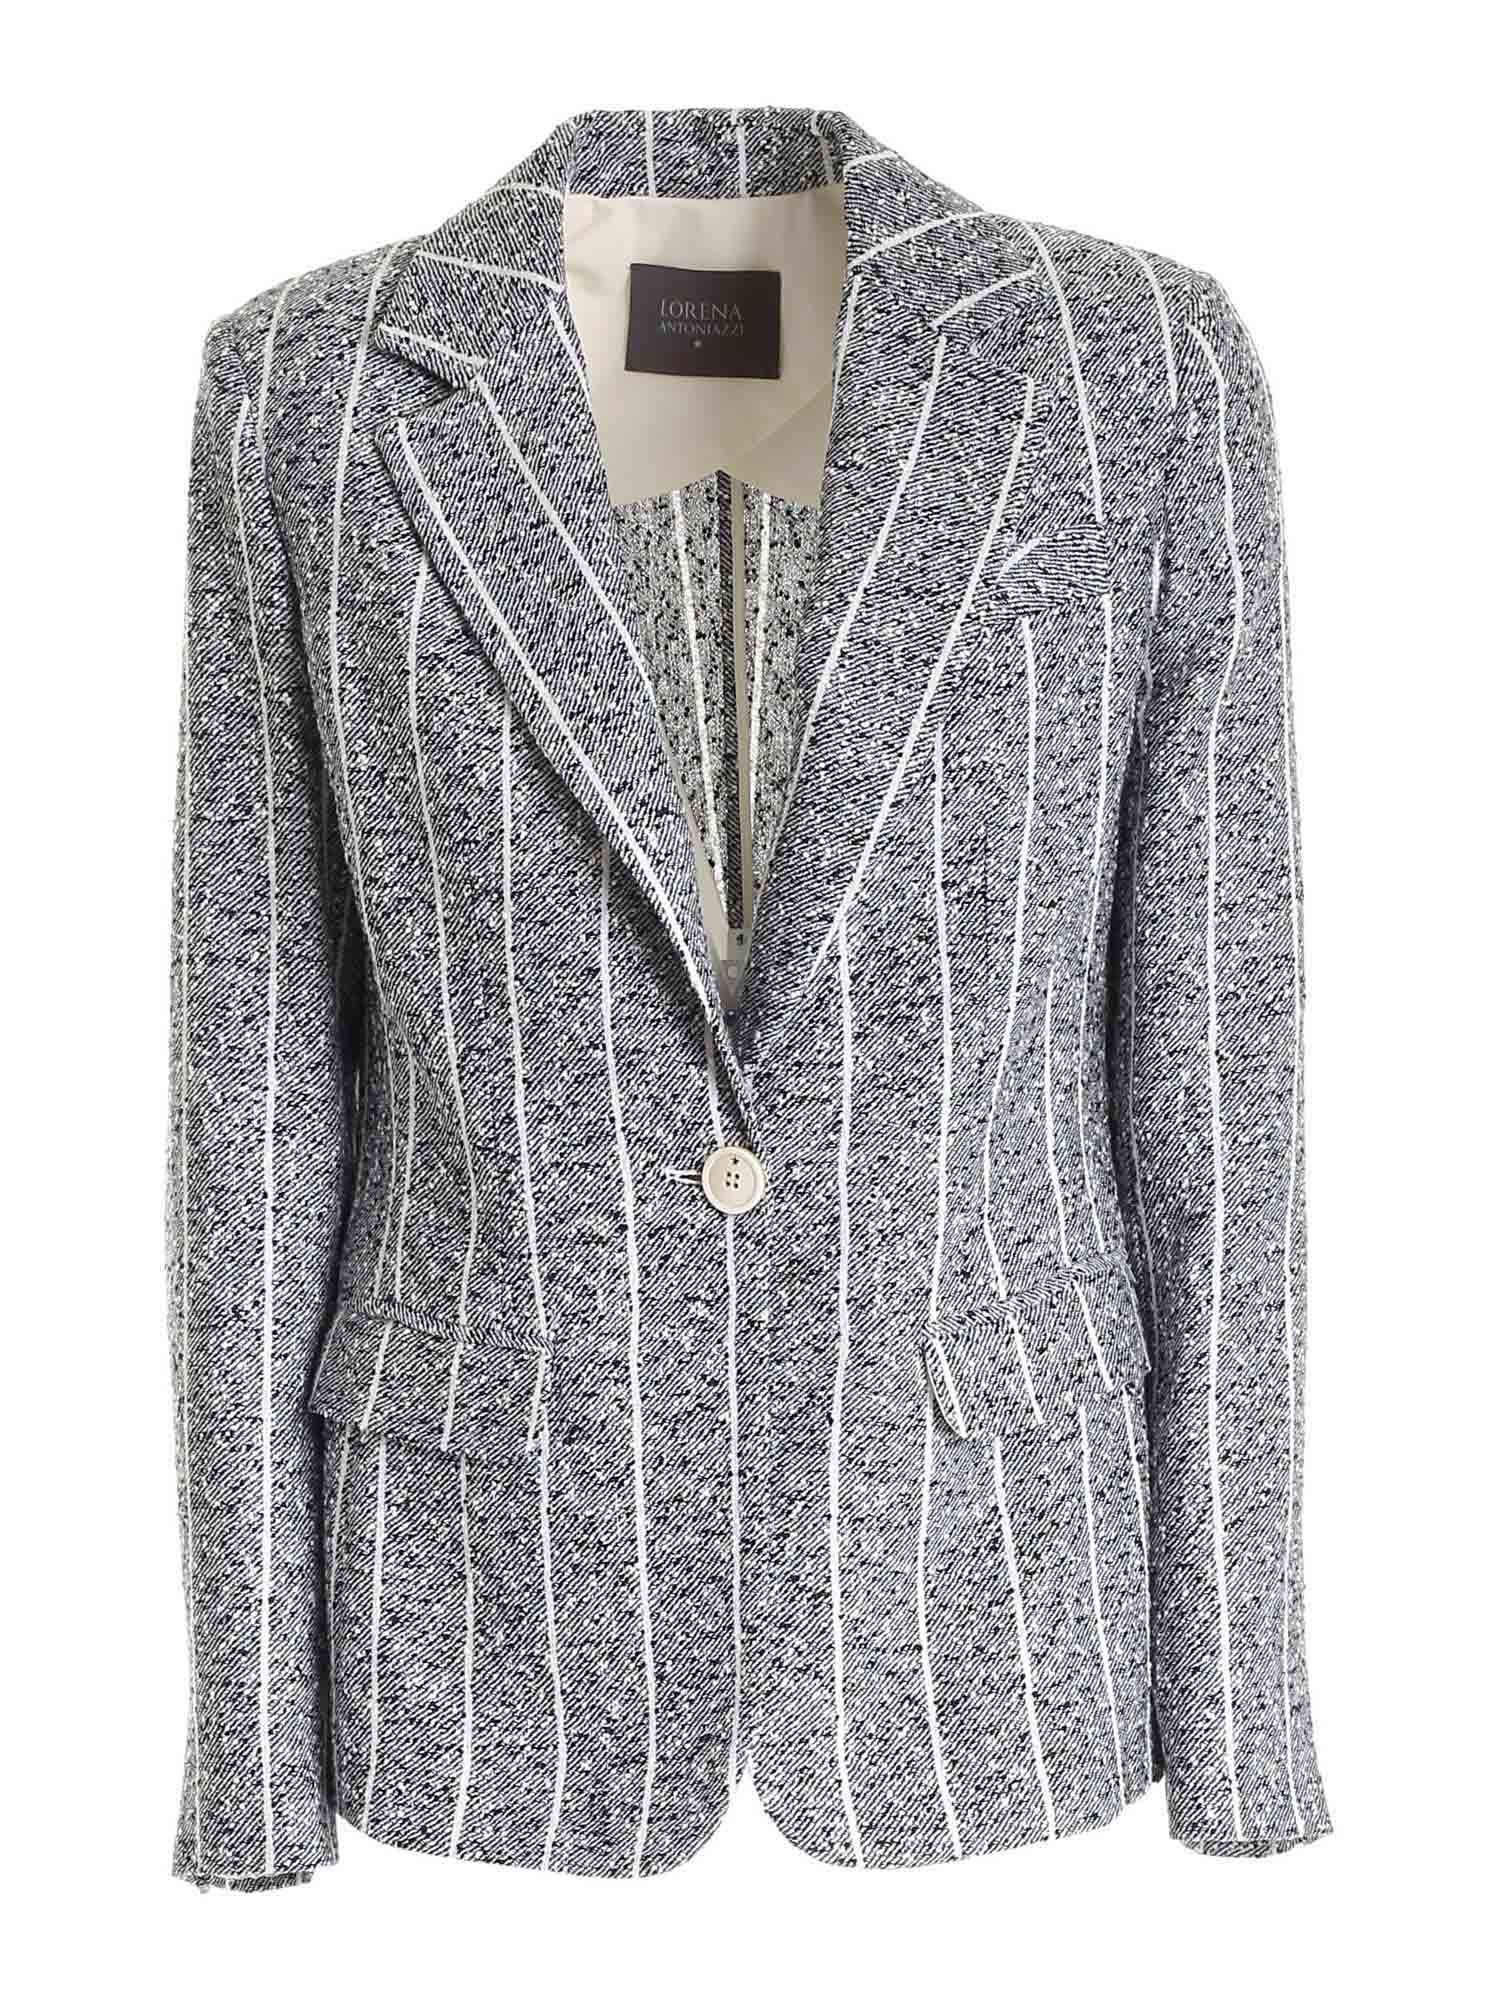 Lorena Antoniazzi Jackets SINGLE-BREASTED JACKET IN BLUE AND WHITE